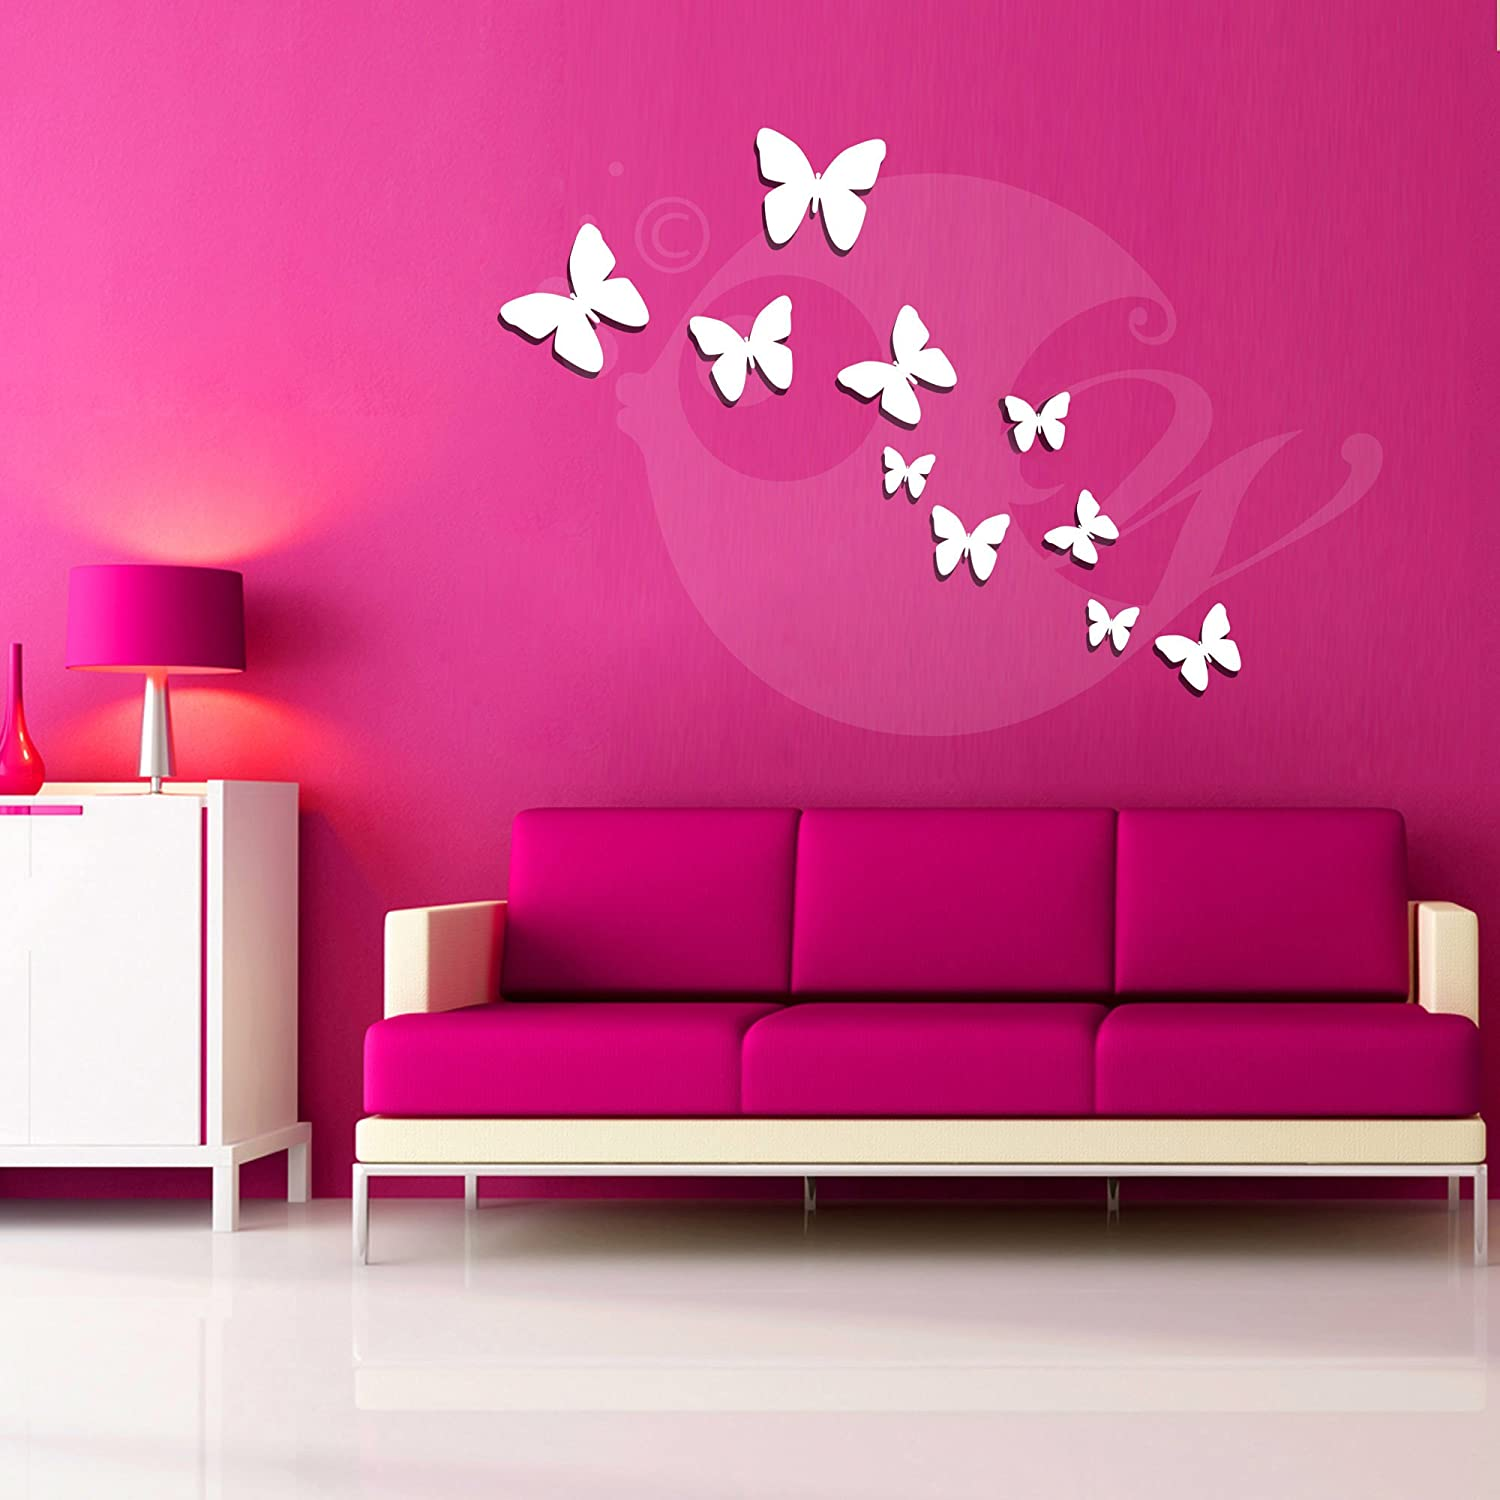 92 living room wall stickers online india stickerskart Low cost wall decor